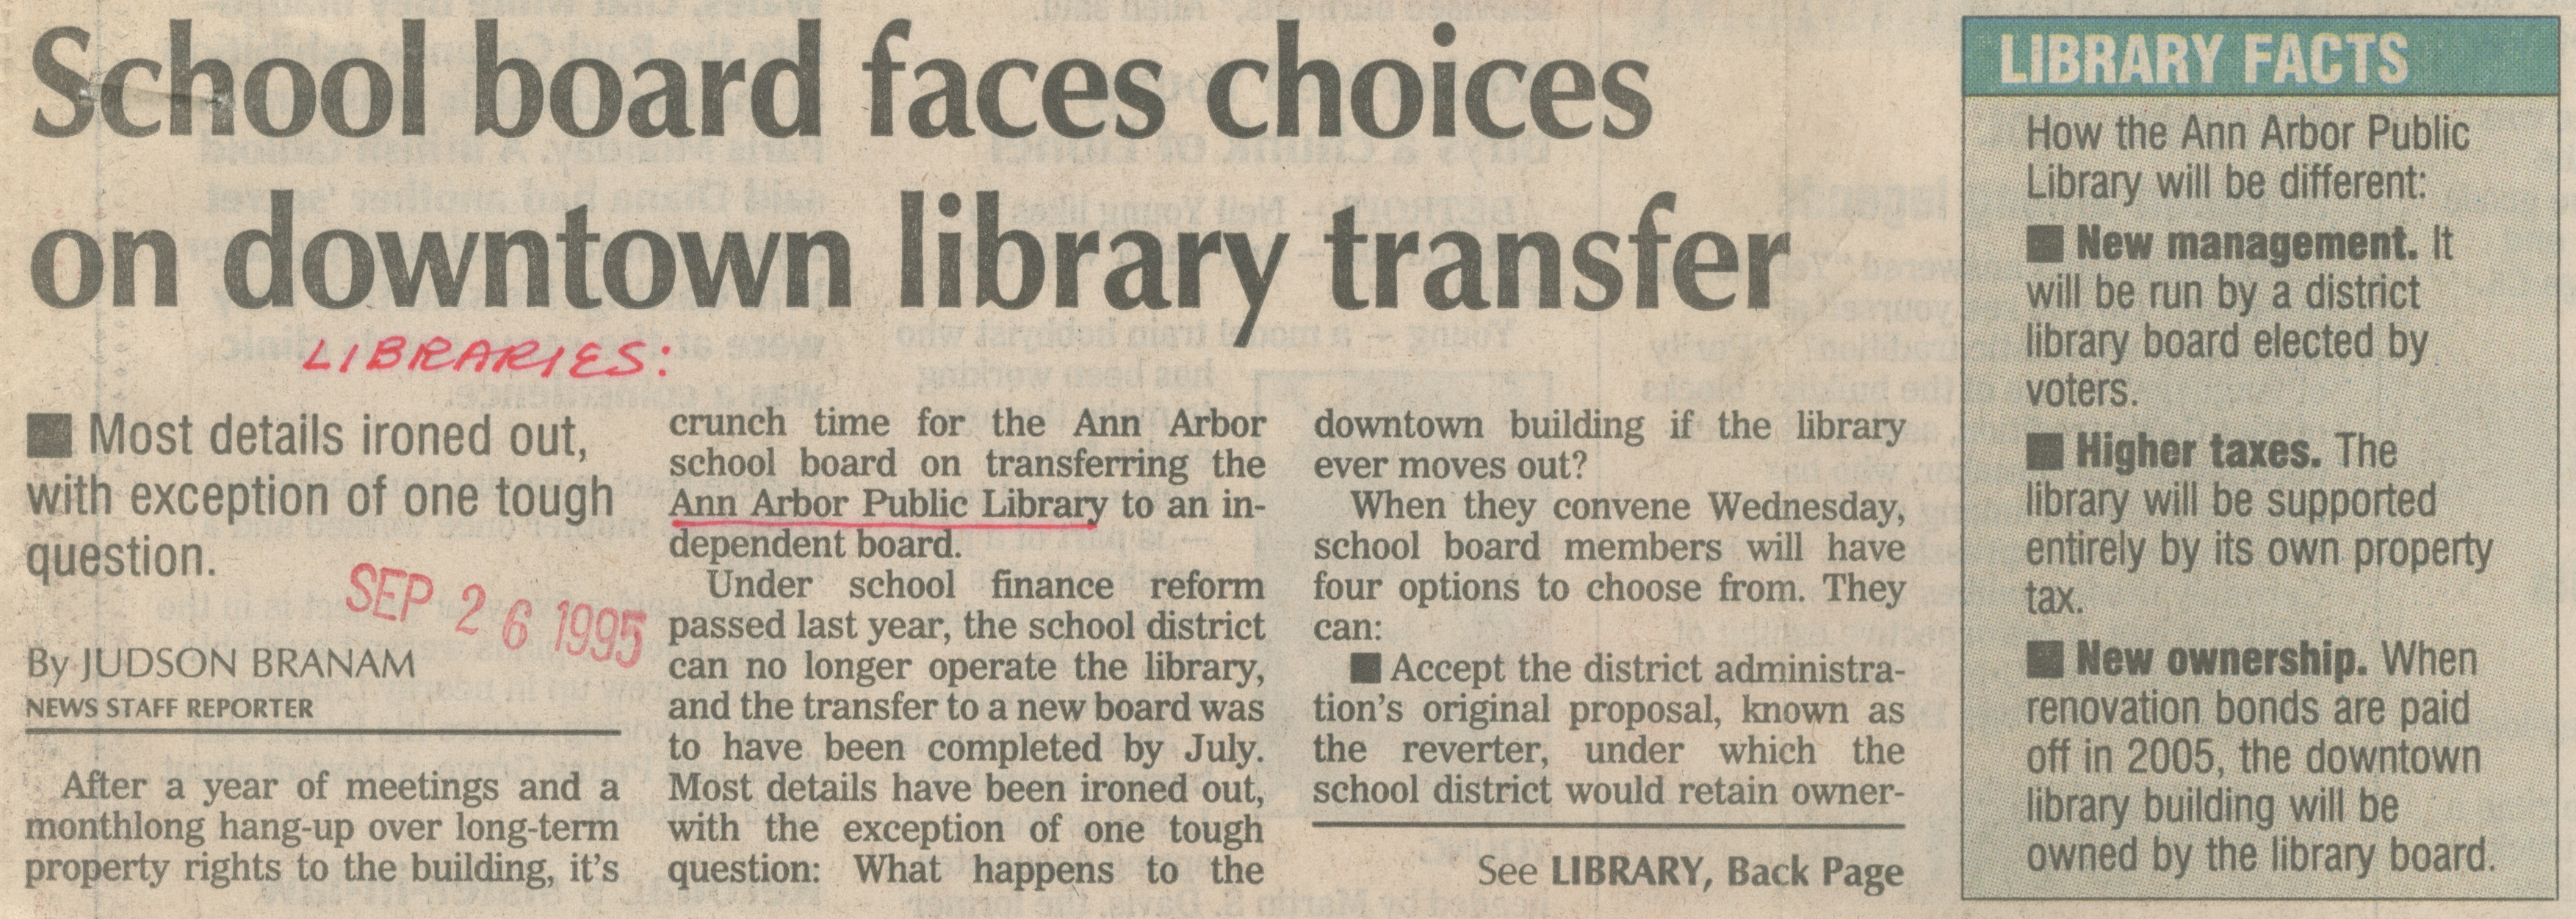 School Board Faces Choices On Downtown Library Transfer image